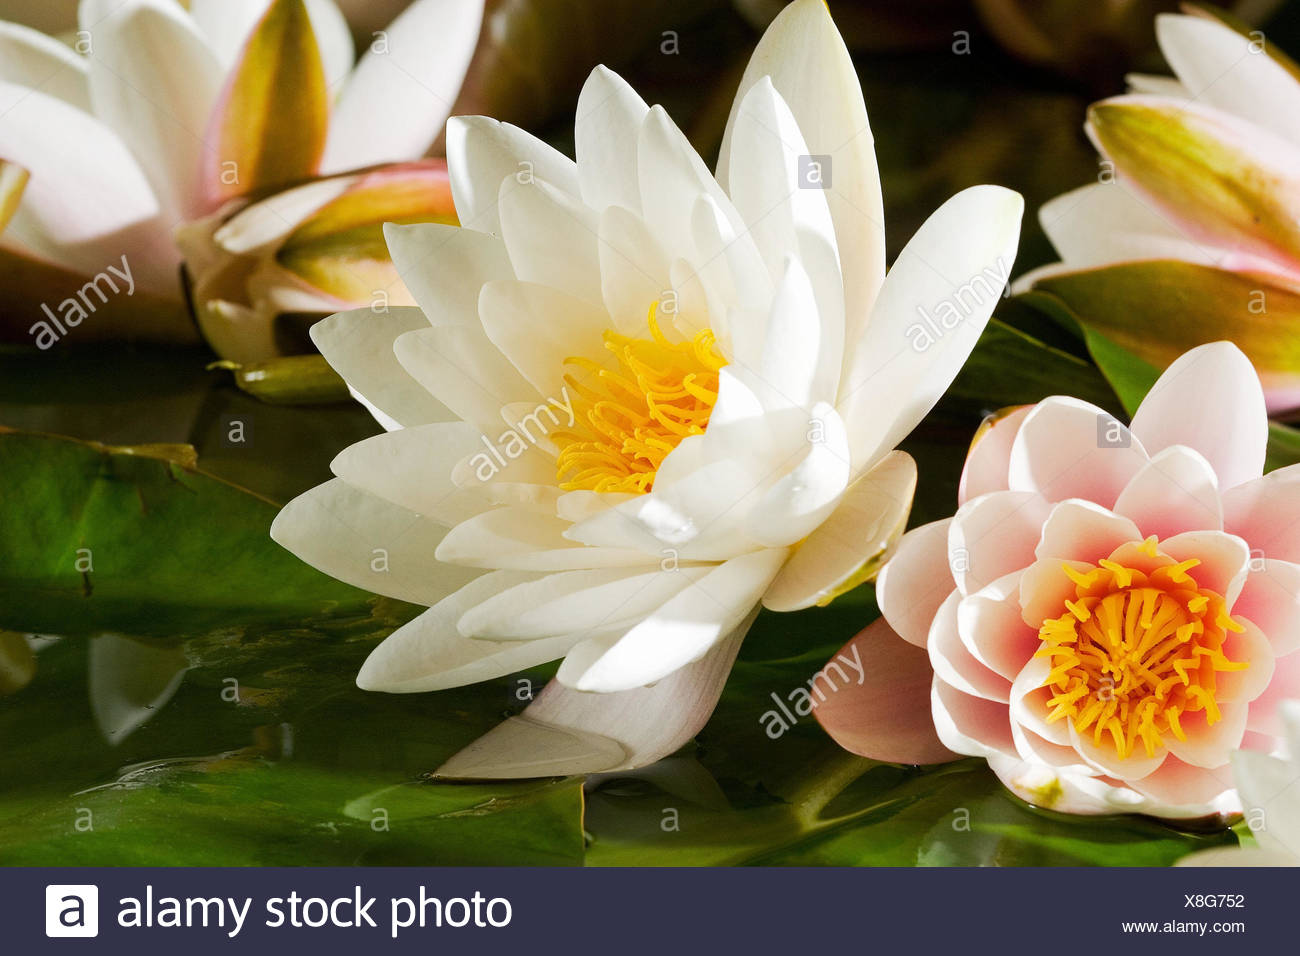 Lotus flowern water plants flowers water lotos lotos lotus flowern water plants flowers water lotos lotos lotusblumen lotuses blossoms white pink softly blossom medium close up beauty nature izmirmasajfo